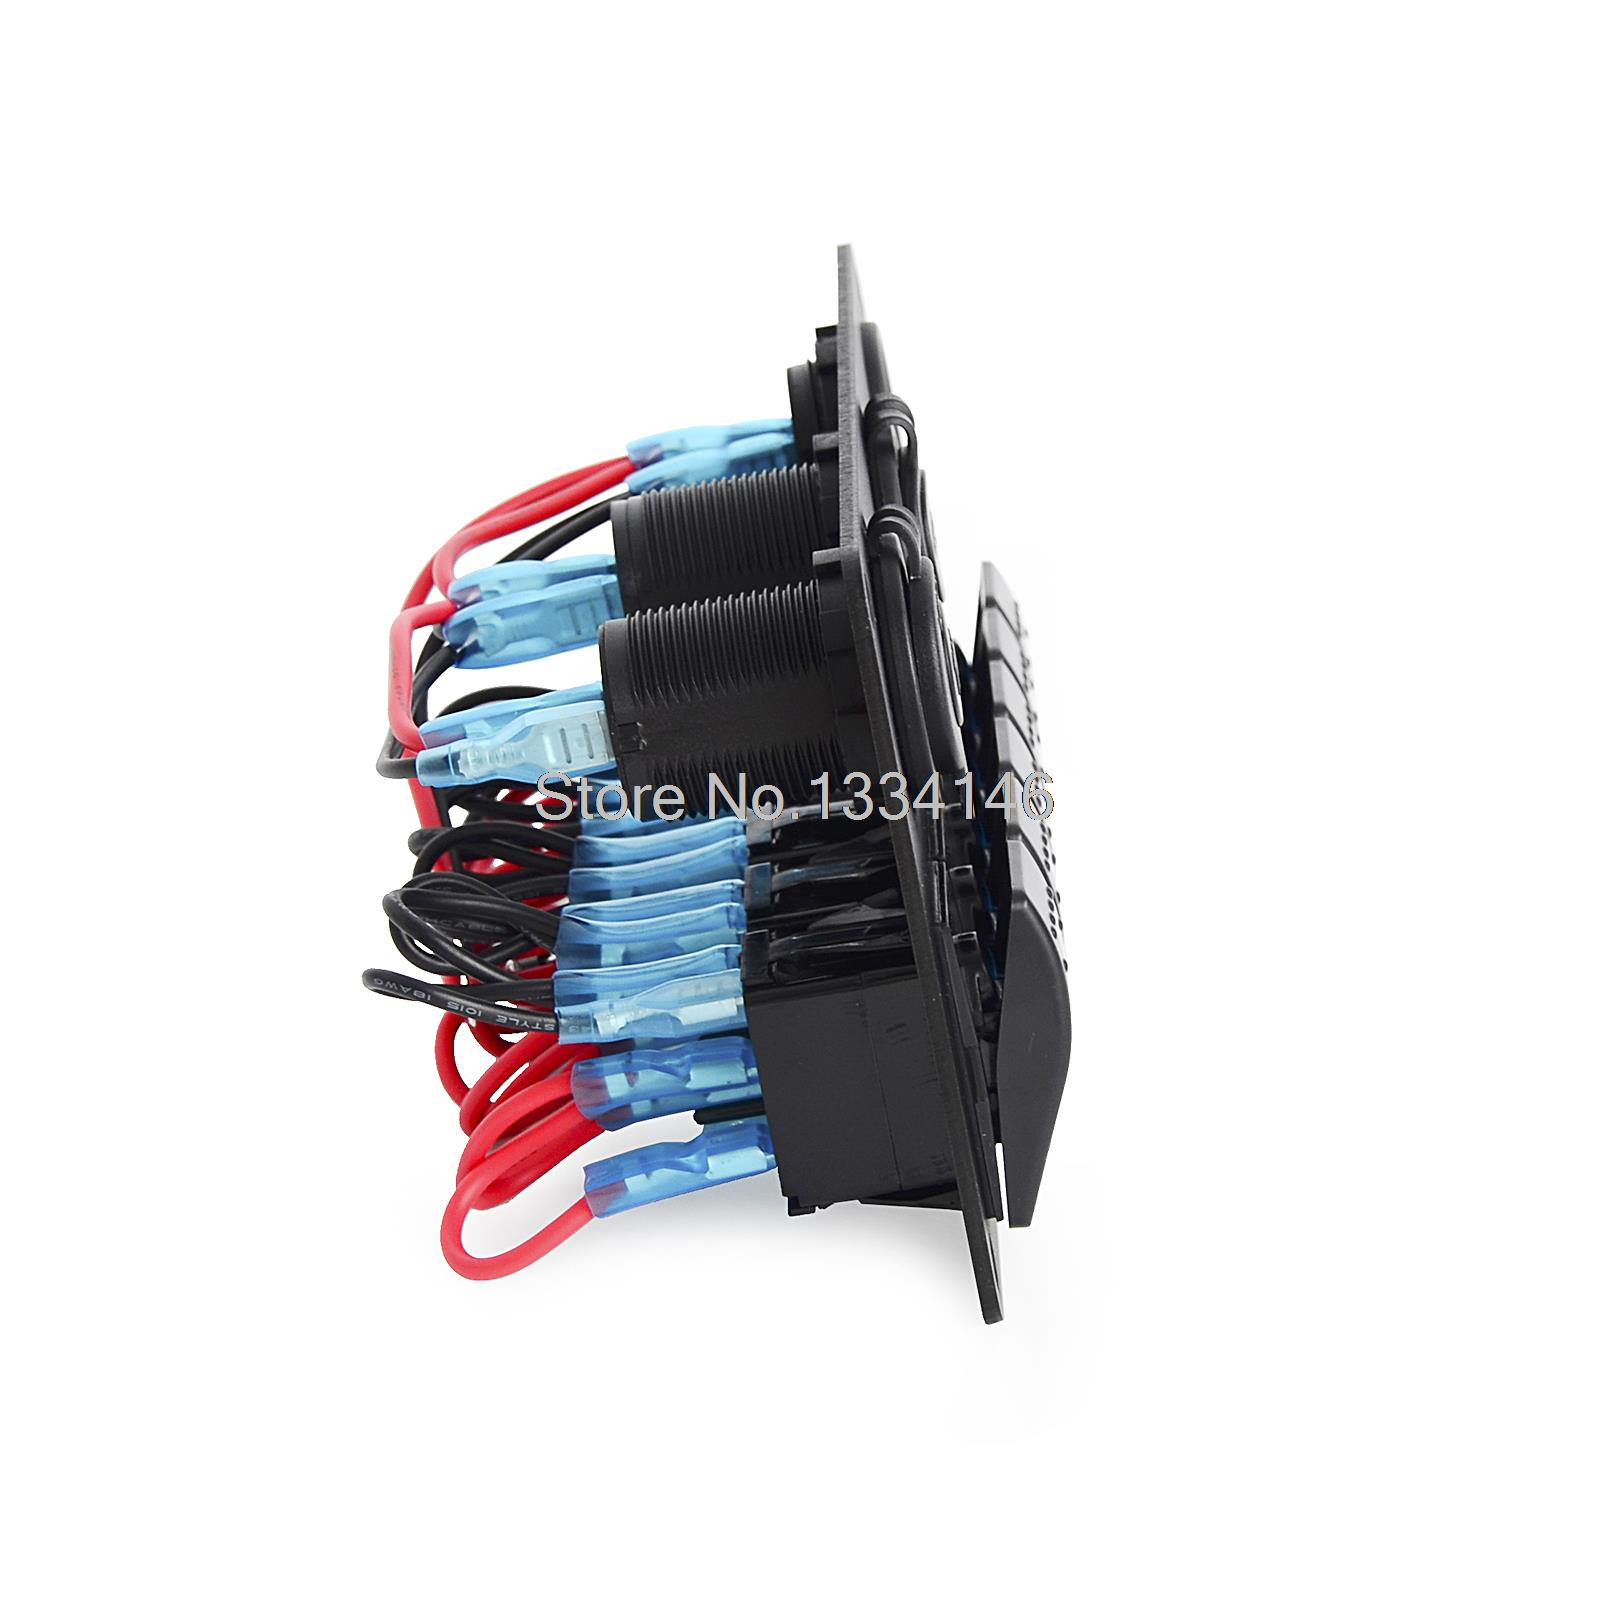 Boat Ac Dc Panel Wiring Electrical Diagrams Marine Diagram Rocker Switch Breaker 6 Gang Waterproof Circuit Motor